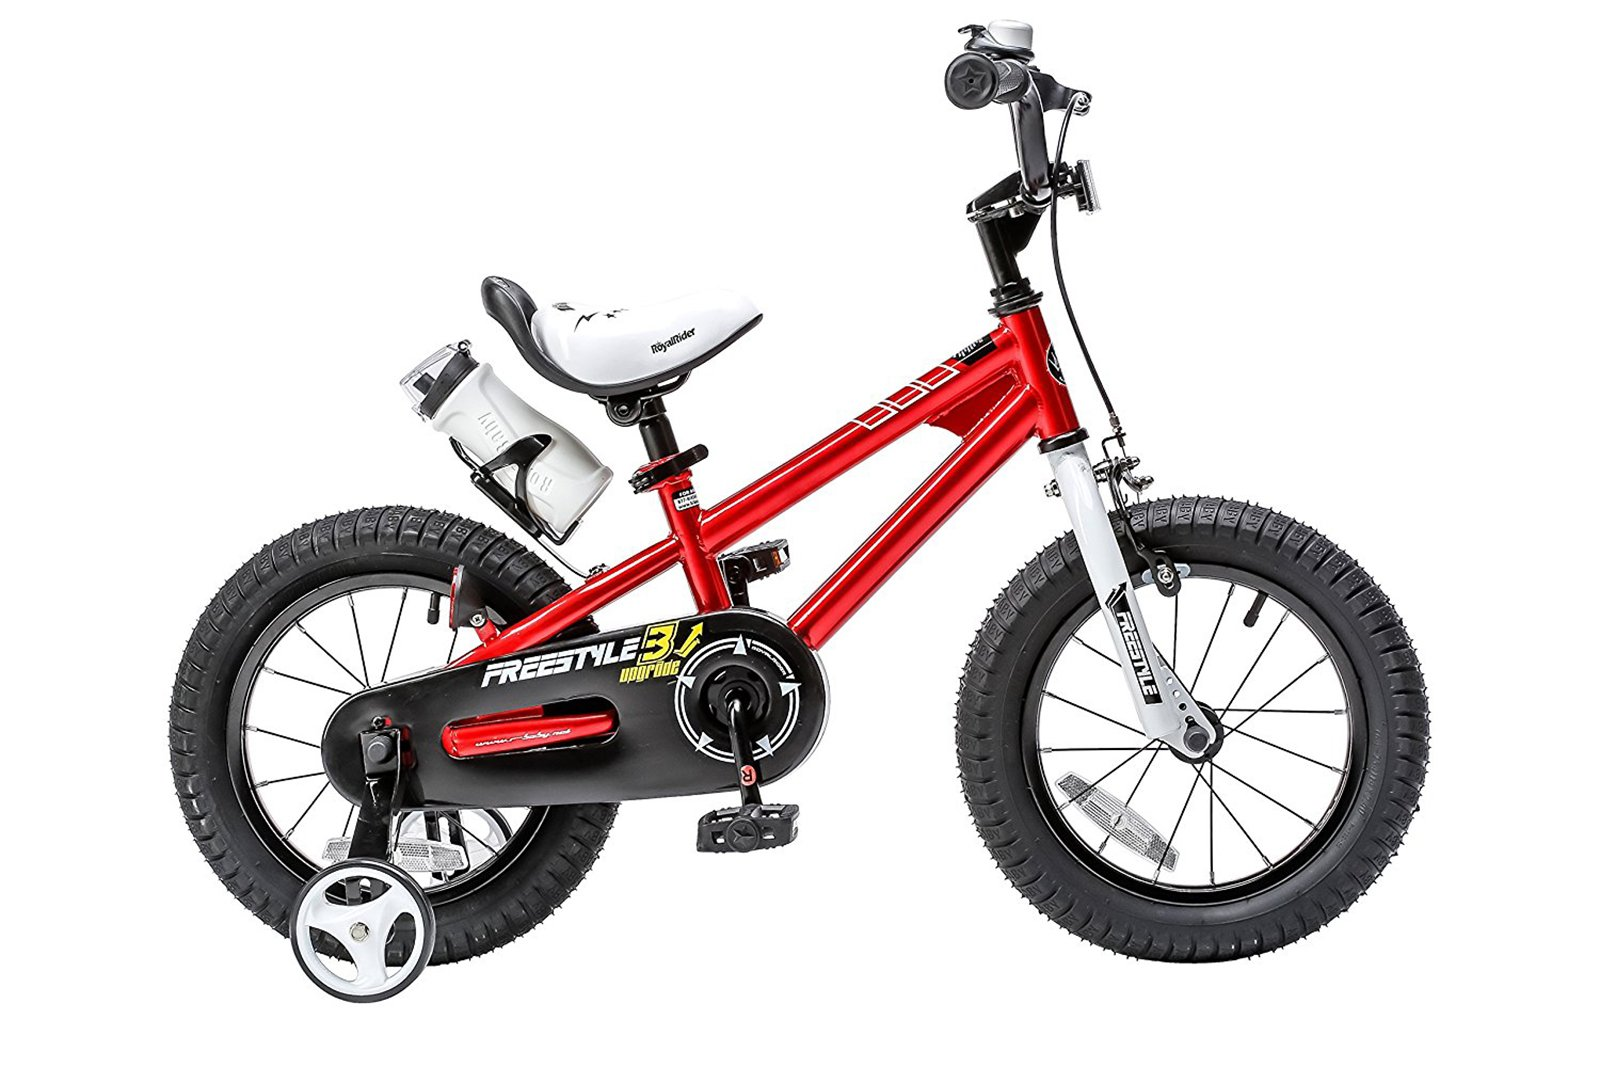 Royalbaby Freestyle Kid's Bike, 16 inch with Training Wheels and Kickstand, Red, Gift for Boys and Girls